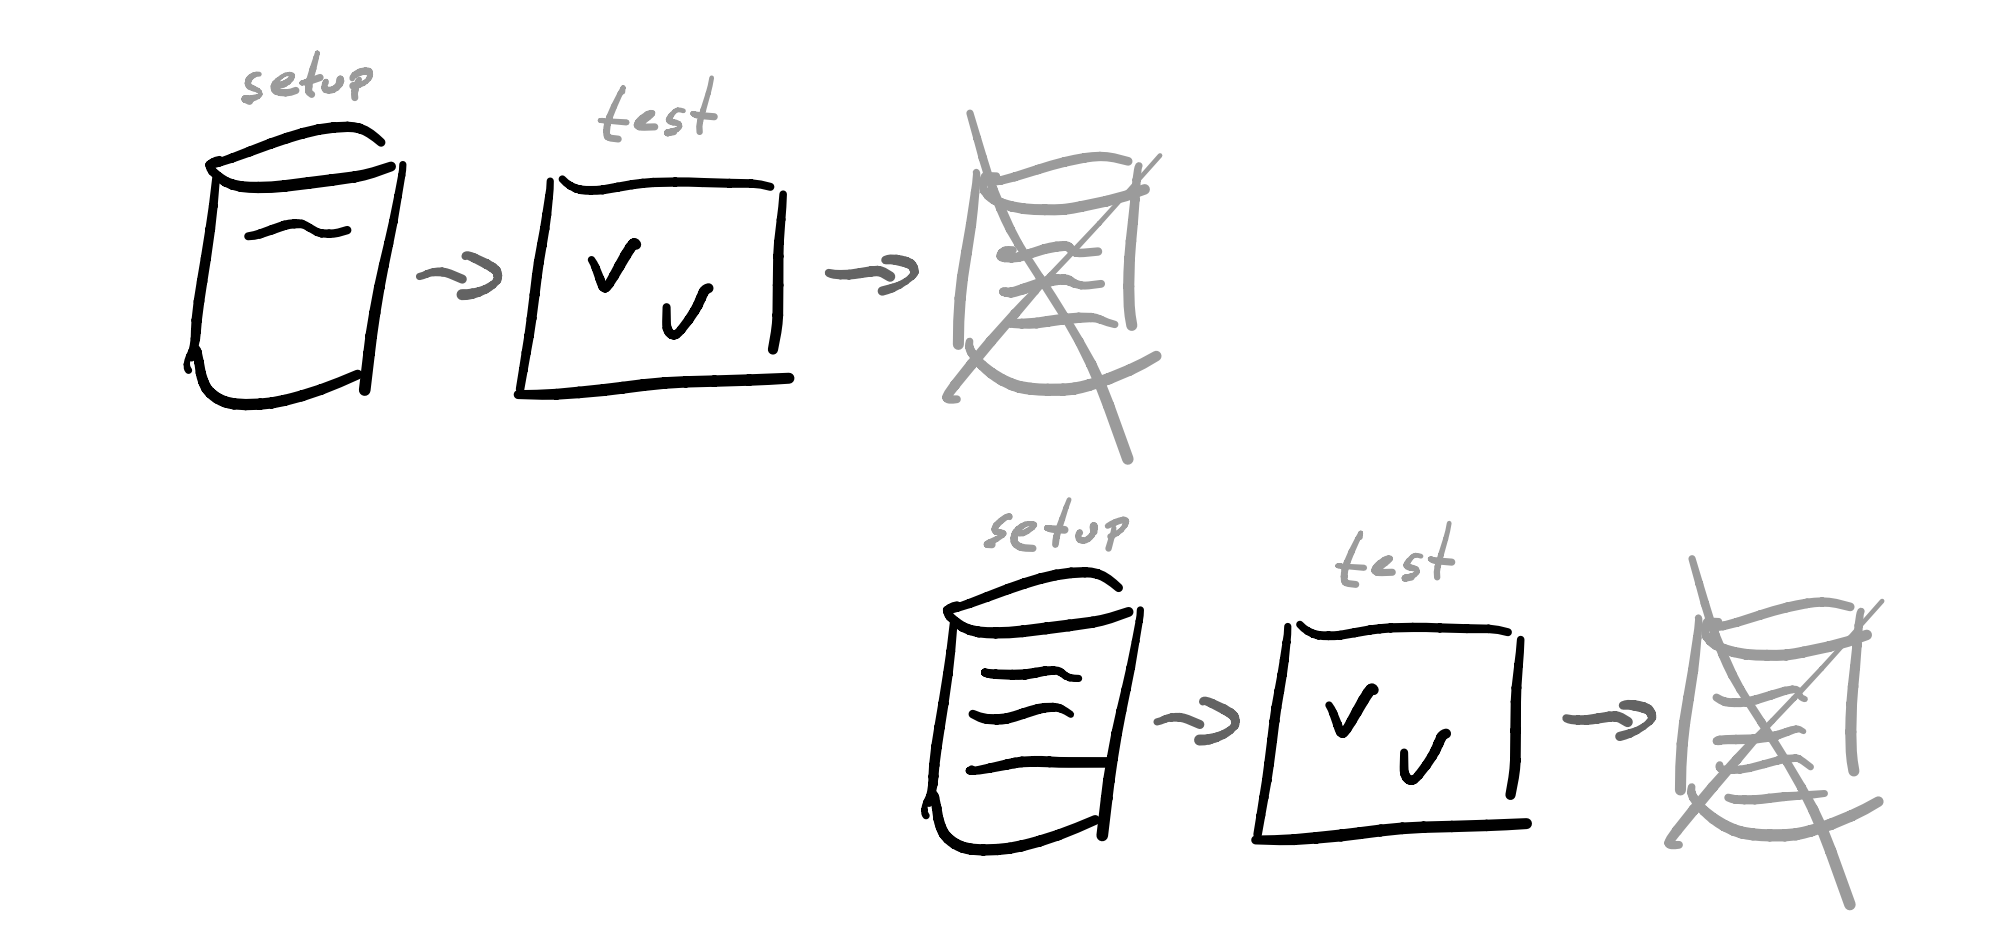 classical: ignore test outcome and implement test setup from scratch